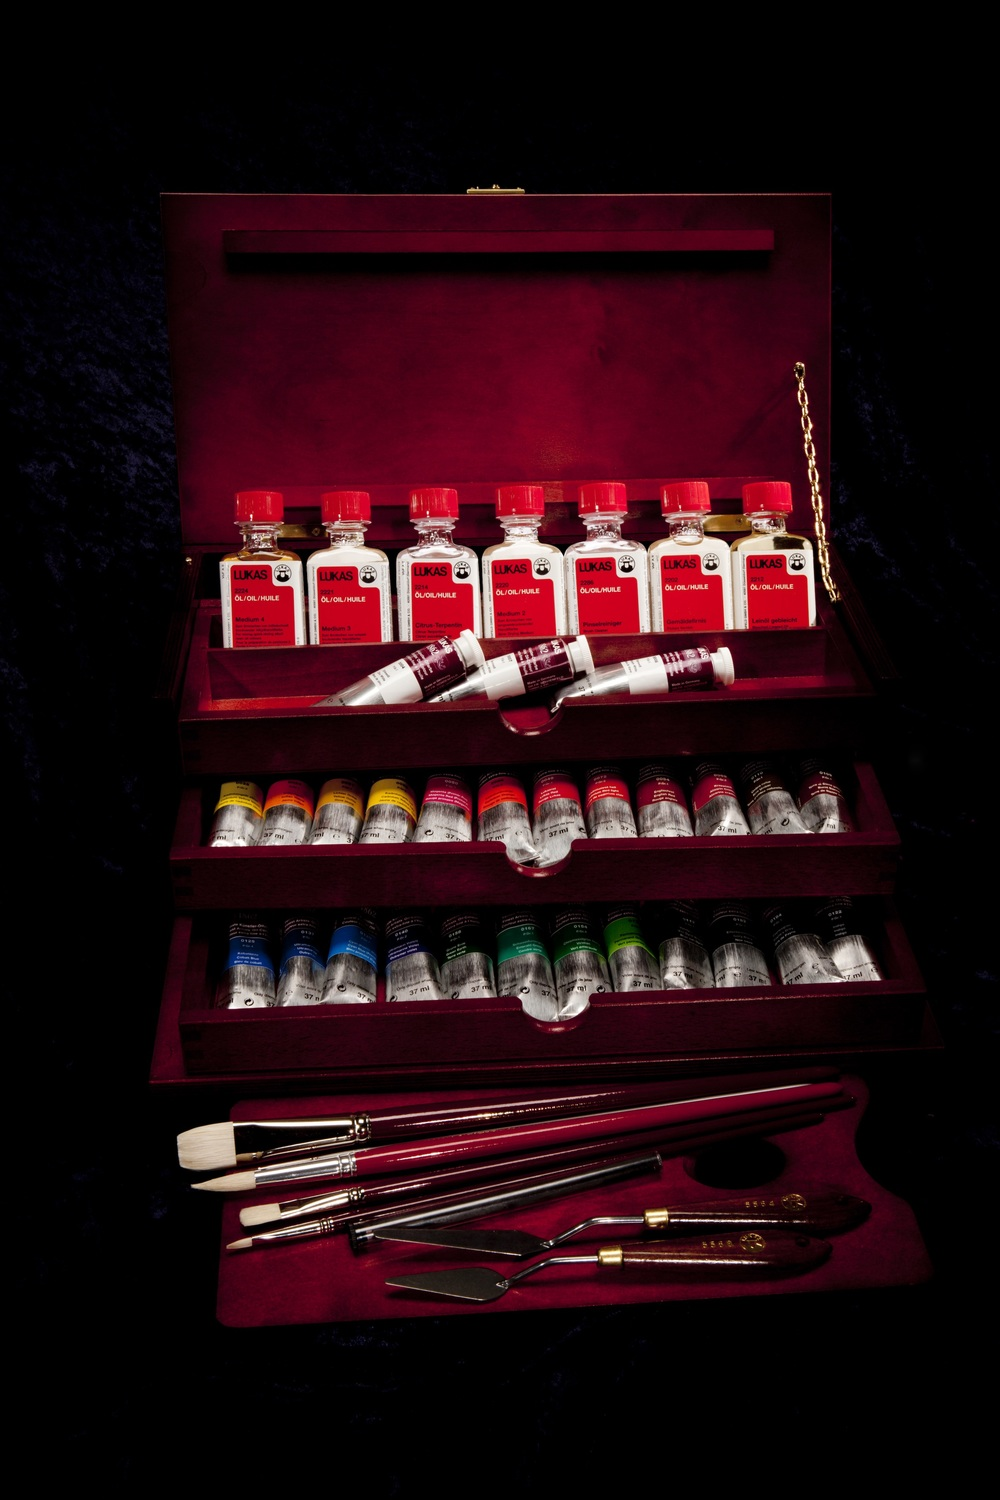 "This deluxe set is the perfect introduction to LUKAS 1862 Oil Colors! Now you can have the rich, 145 year history of LUKAS oils at your fingertips in this convenient ""treasure chest"" that also includes all necessary oil mediums and even brushes and sketching charcoal! This luxurious set of oil paints makes the ideal gift for both professional and amateur painters alike, or a beautiful way to keep your studio tidy and organized. Whether you're looking for a convenient, complete set up for a first-time oil painter, a way to broaden your painting experience and material knowledge, or a beautiful, lavish gift sure to be appreciated by any fine oil artist, this deluxe set of LUKAS 1862 Oil Colors and Mediums may just be what you're after! Deluxe set includes: Mahogany finished 3-drawer ""treasure chest"" 27 LUKAS 1862 Oil Colors in 37ml tubes 7 mediums in 50ml glass bottles 5 LUKAS brushes 2 wood-handled steel palette knives 2 pieces of sketching charcoal 1 wooden palette"